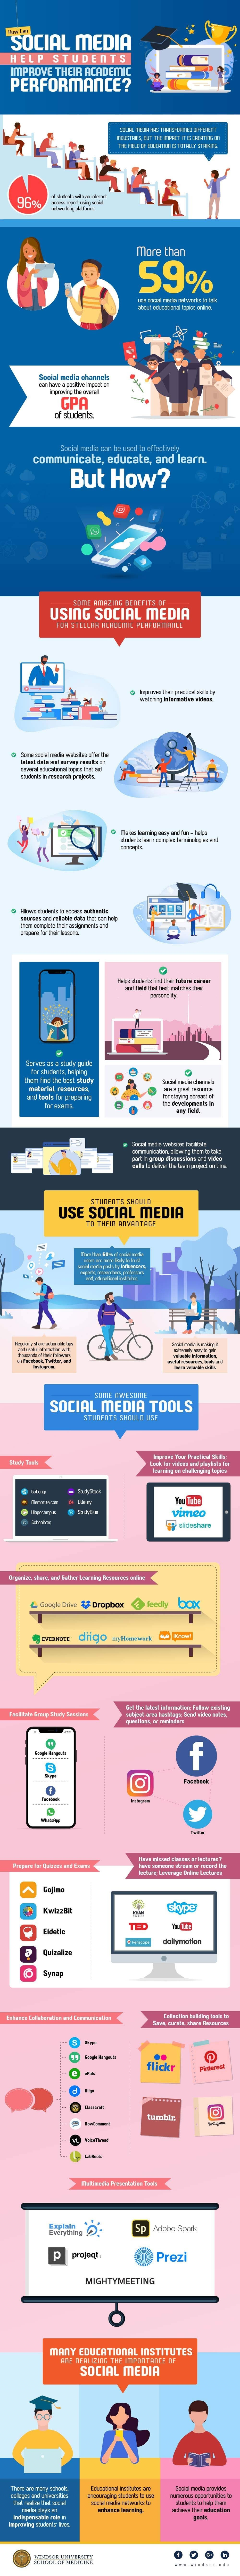 How Can Social Media Help Students Improve Their Academic Performance? #infographic